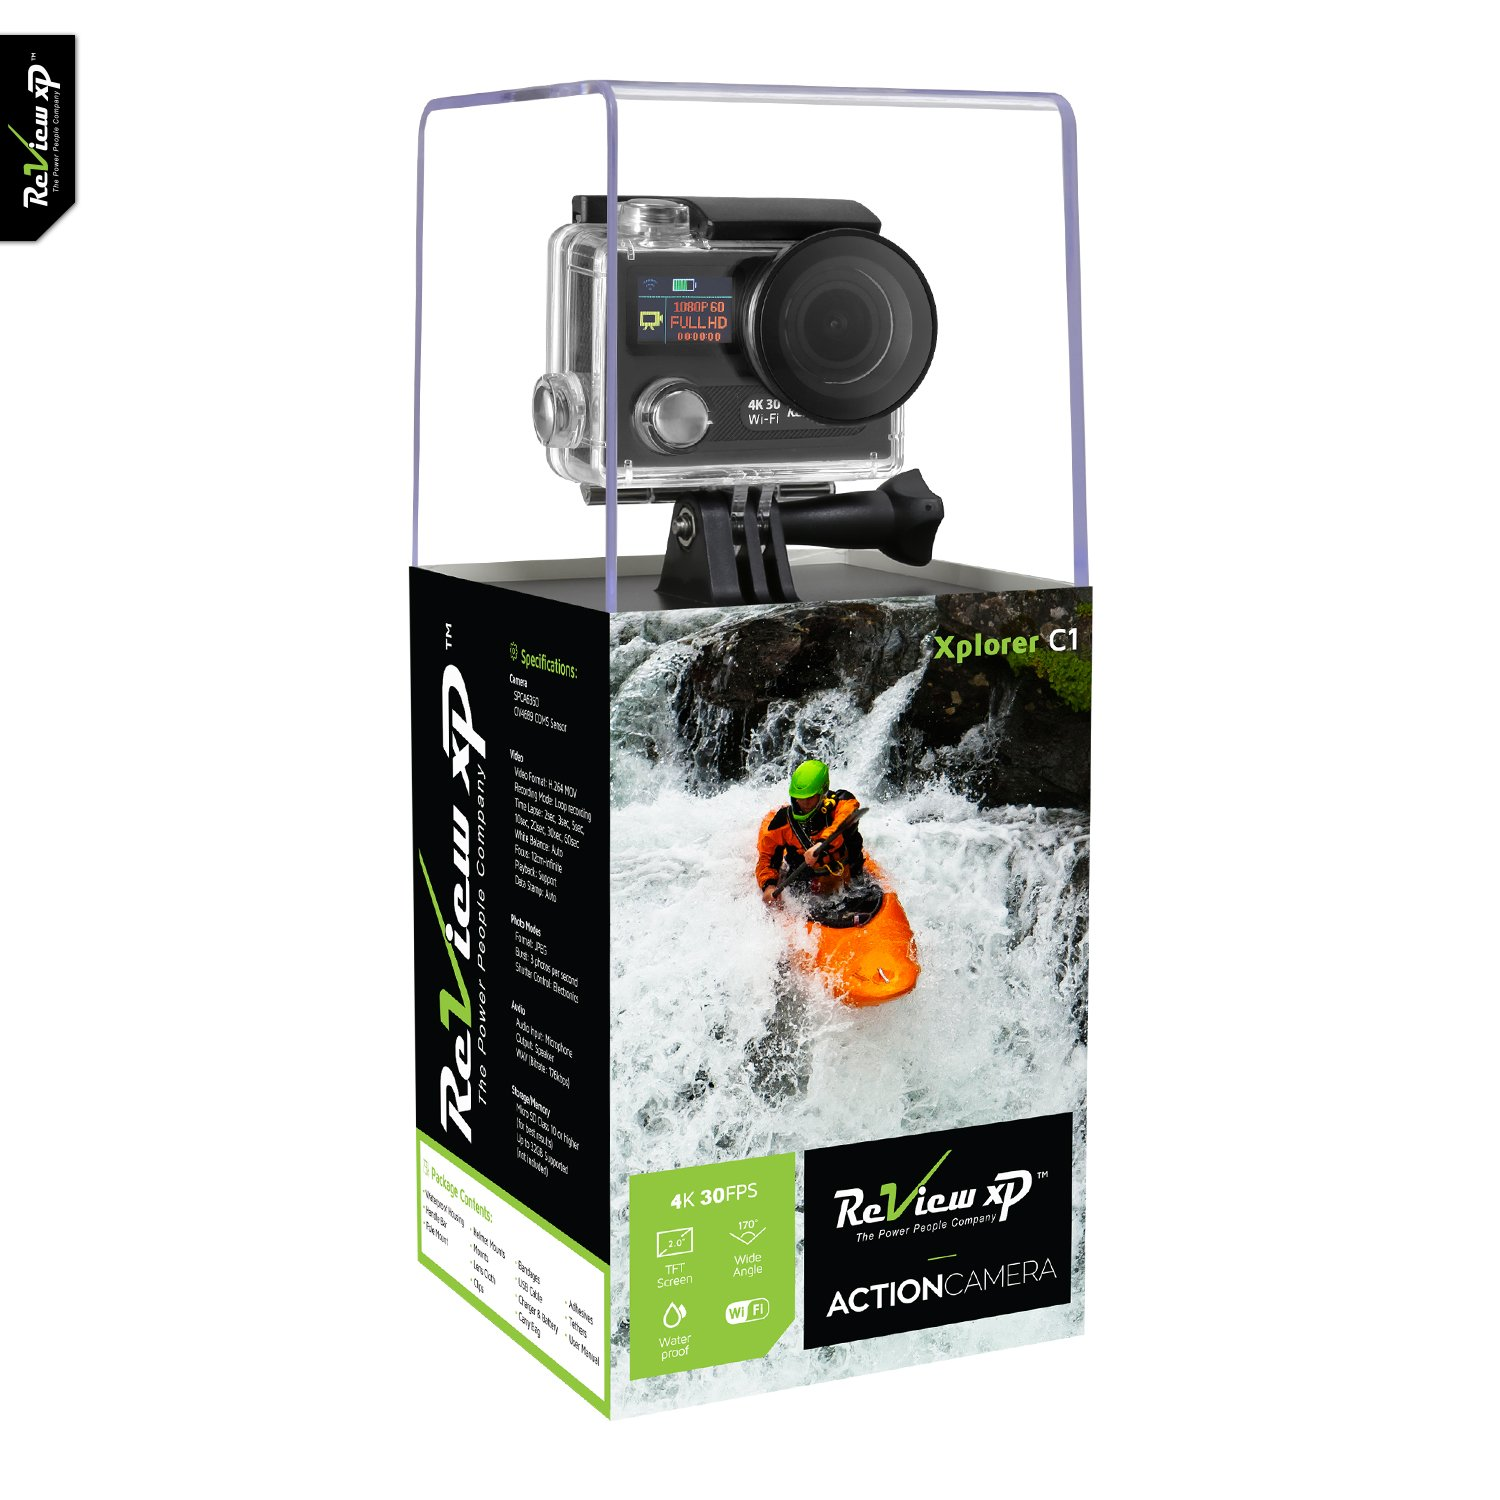 Review XP 4K Wi-Fi Waterproof Sports Action Camera 12MP SONY Sensor 30fps HD Video Underwater Camcorder 170° Wide Angle Lens Dual Lens Screen Battery Accessories Kit– Black